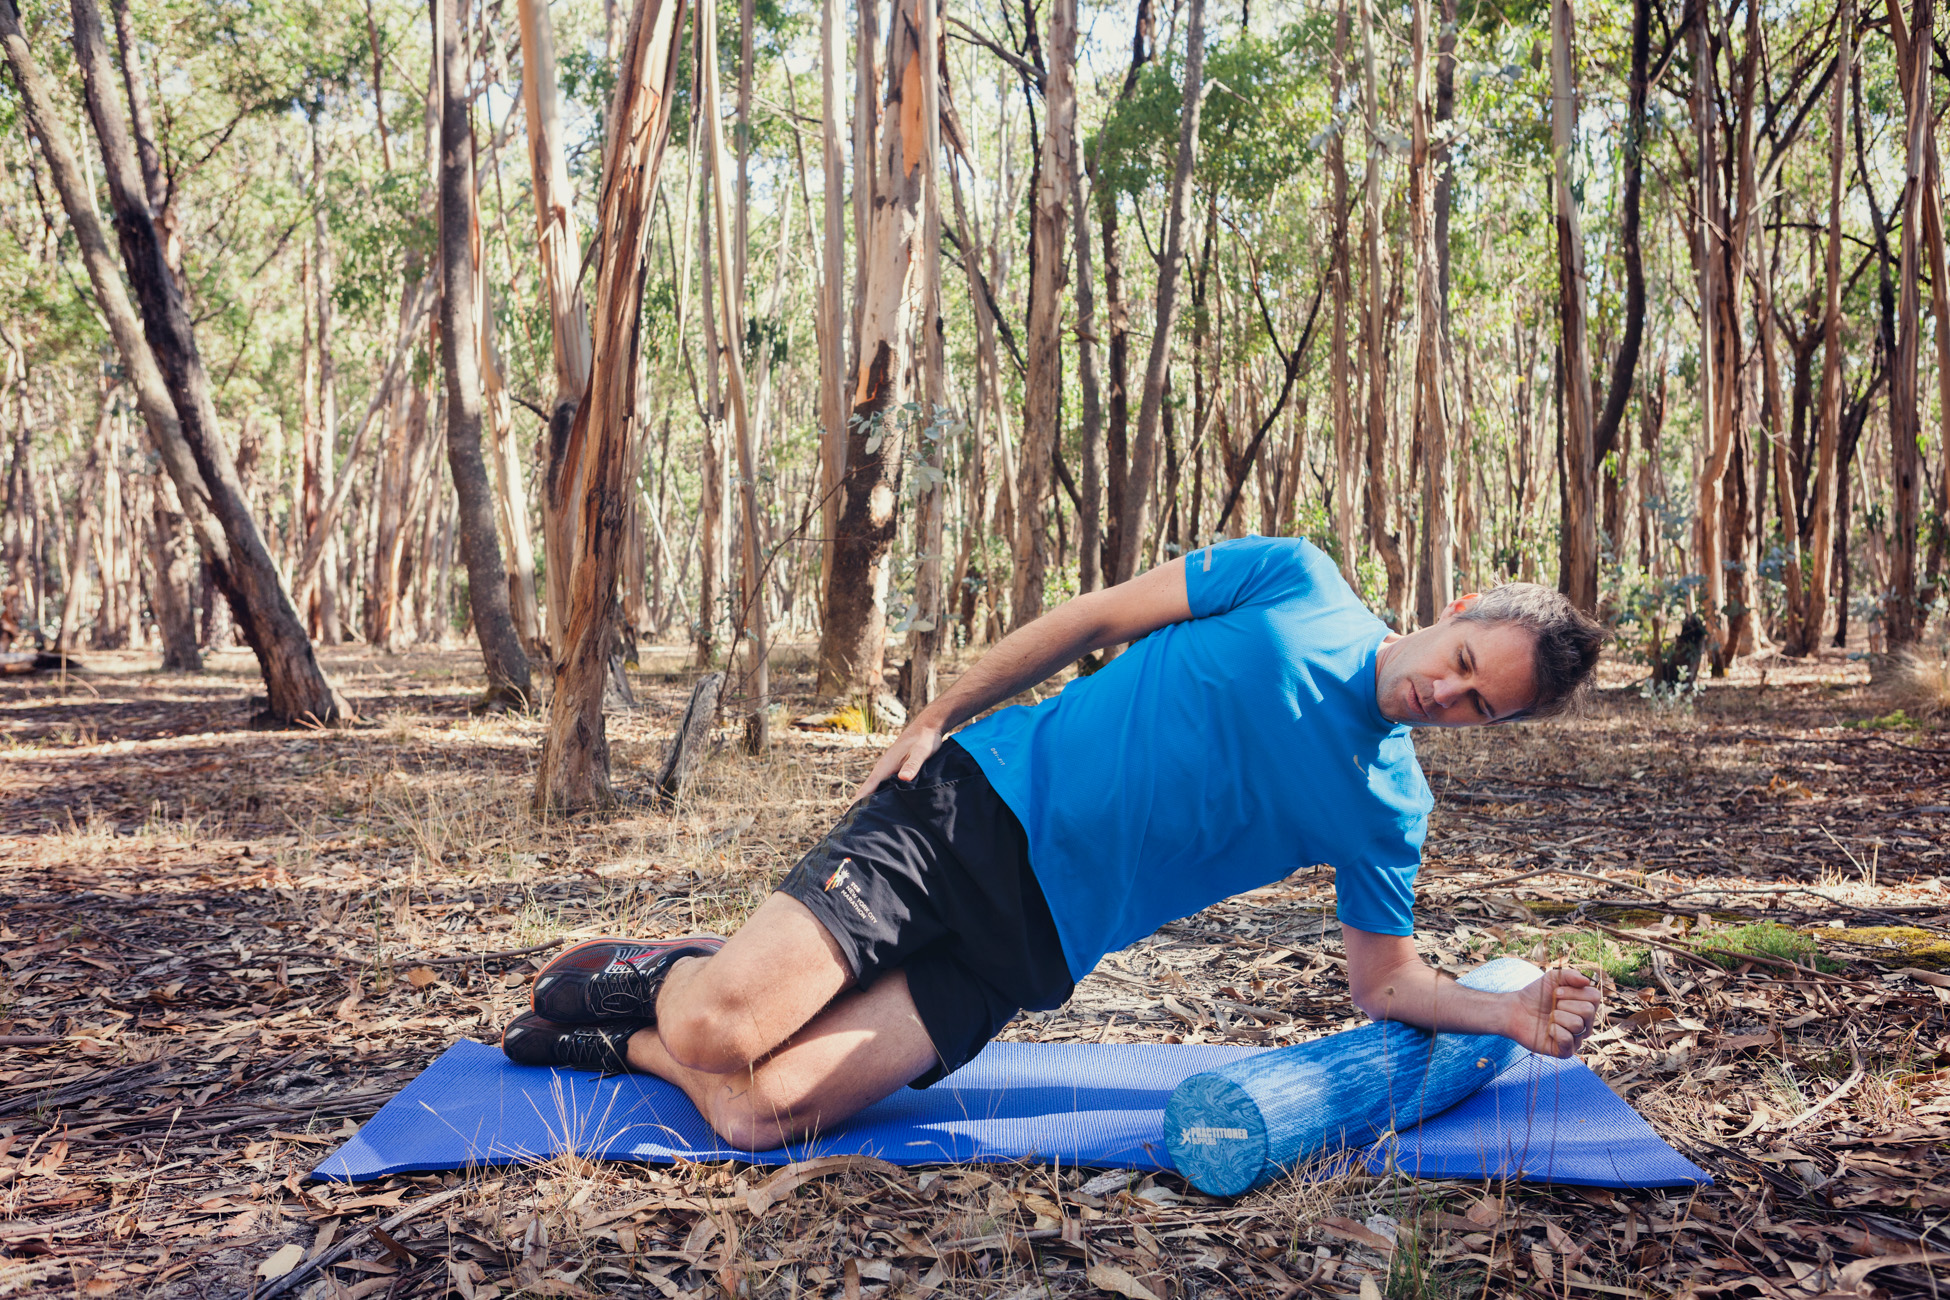 Side-plank   Lie on your side and push into a side-plank, either through your knees or feet. Keep breathing while holding for 15-30 seconds.  Then repeat on the other side.  Keep the shoulders, hips and knees in the same alignment.  This exercise will help strengthen the small stabiliser muscles in the shoulders.